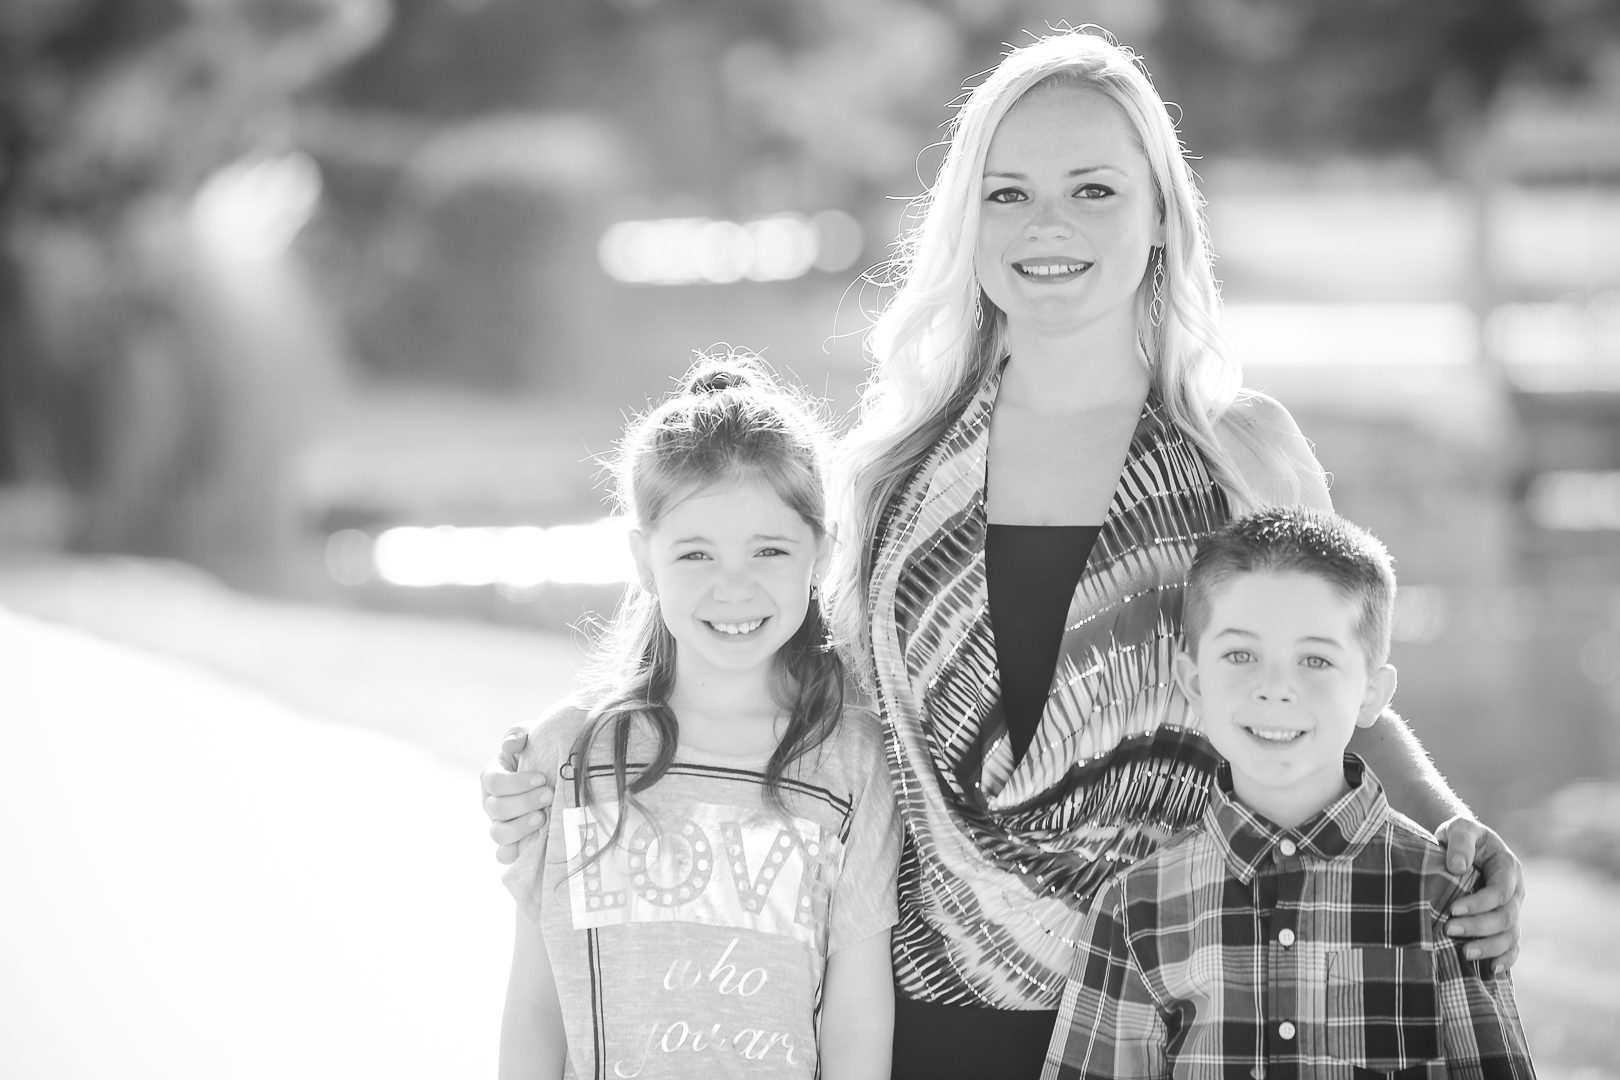 Las vegas bw family portrait photographer christian purdie photo